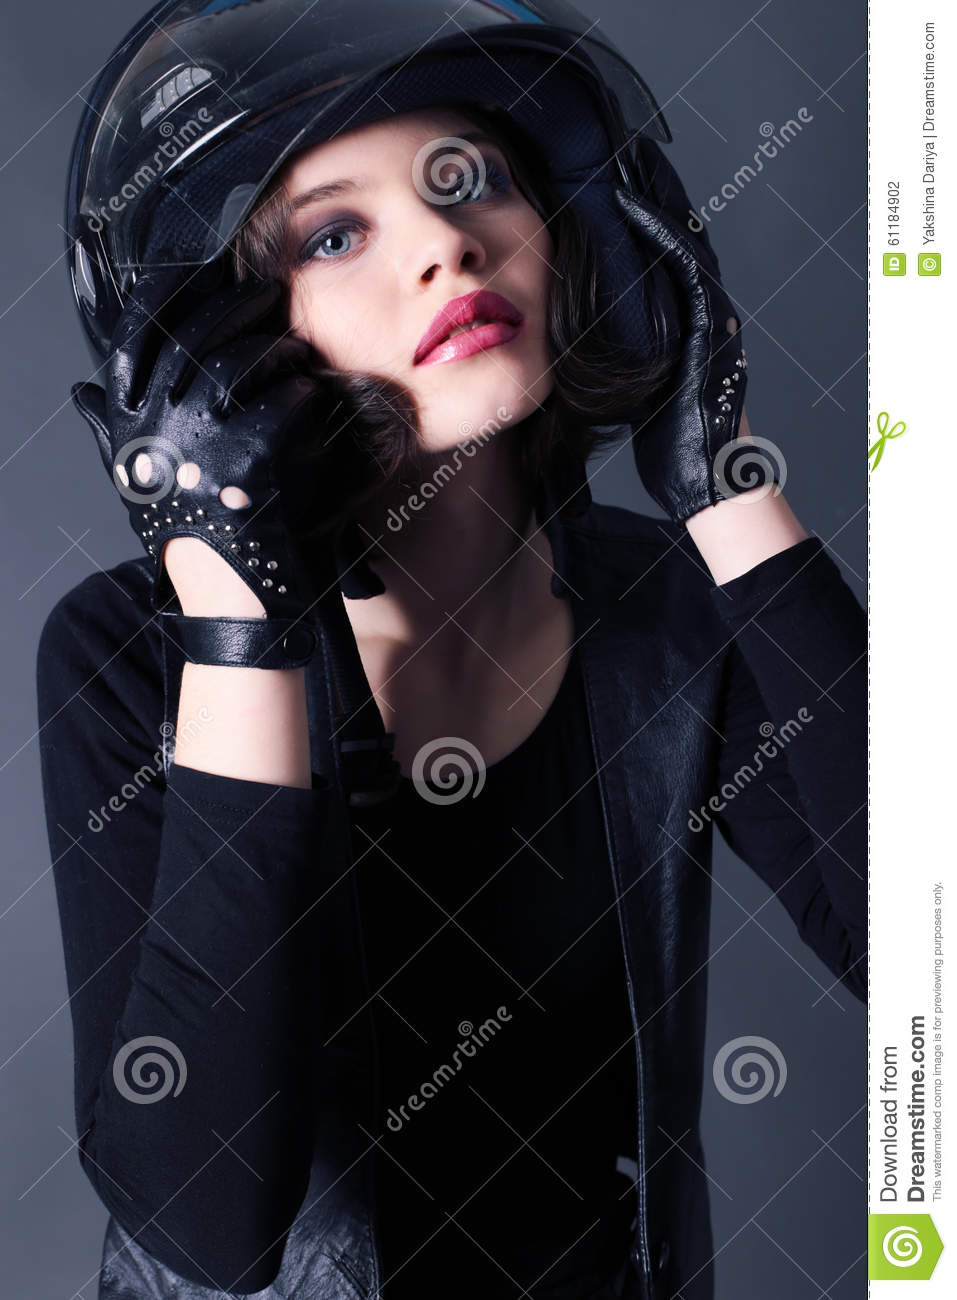 girl with dark short hair wears biker clothes leather jacket and helmet